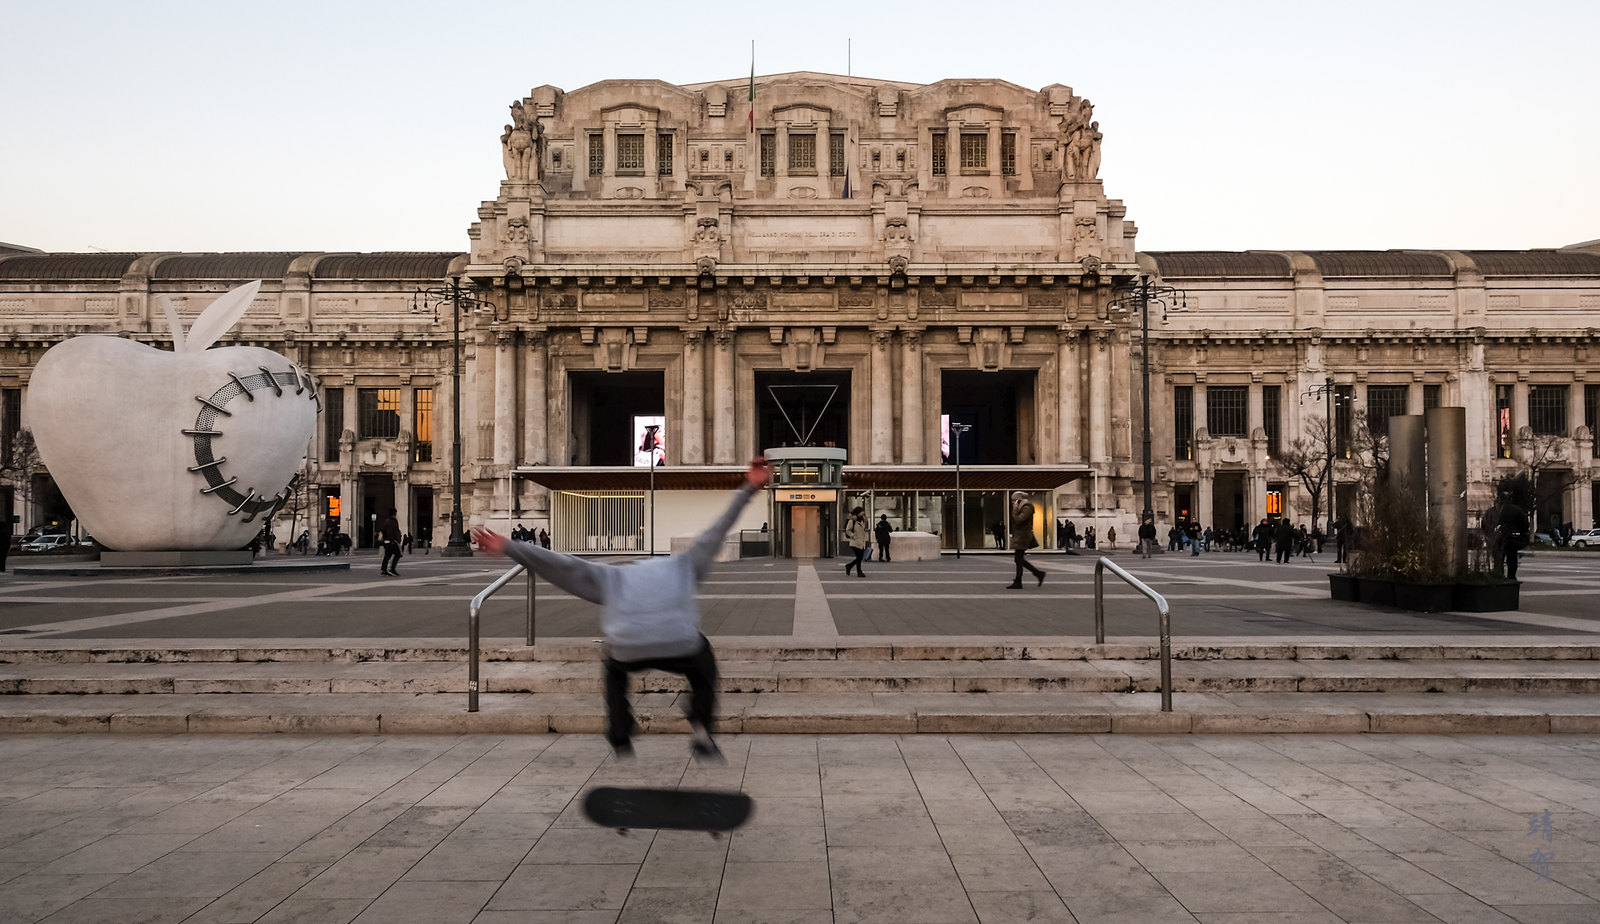 Skateboarder at Milano Centrale